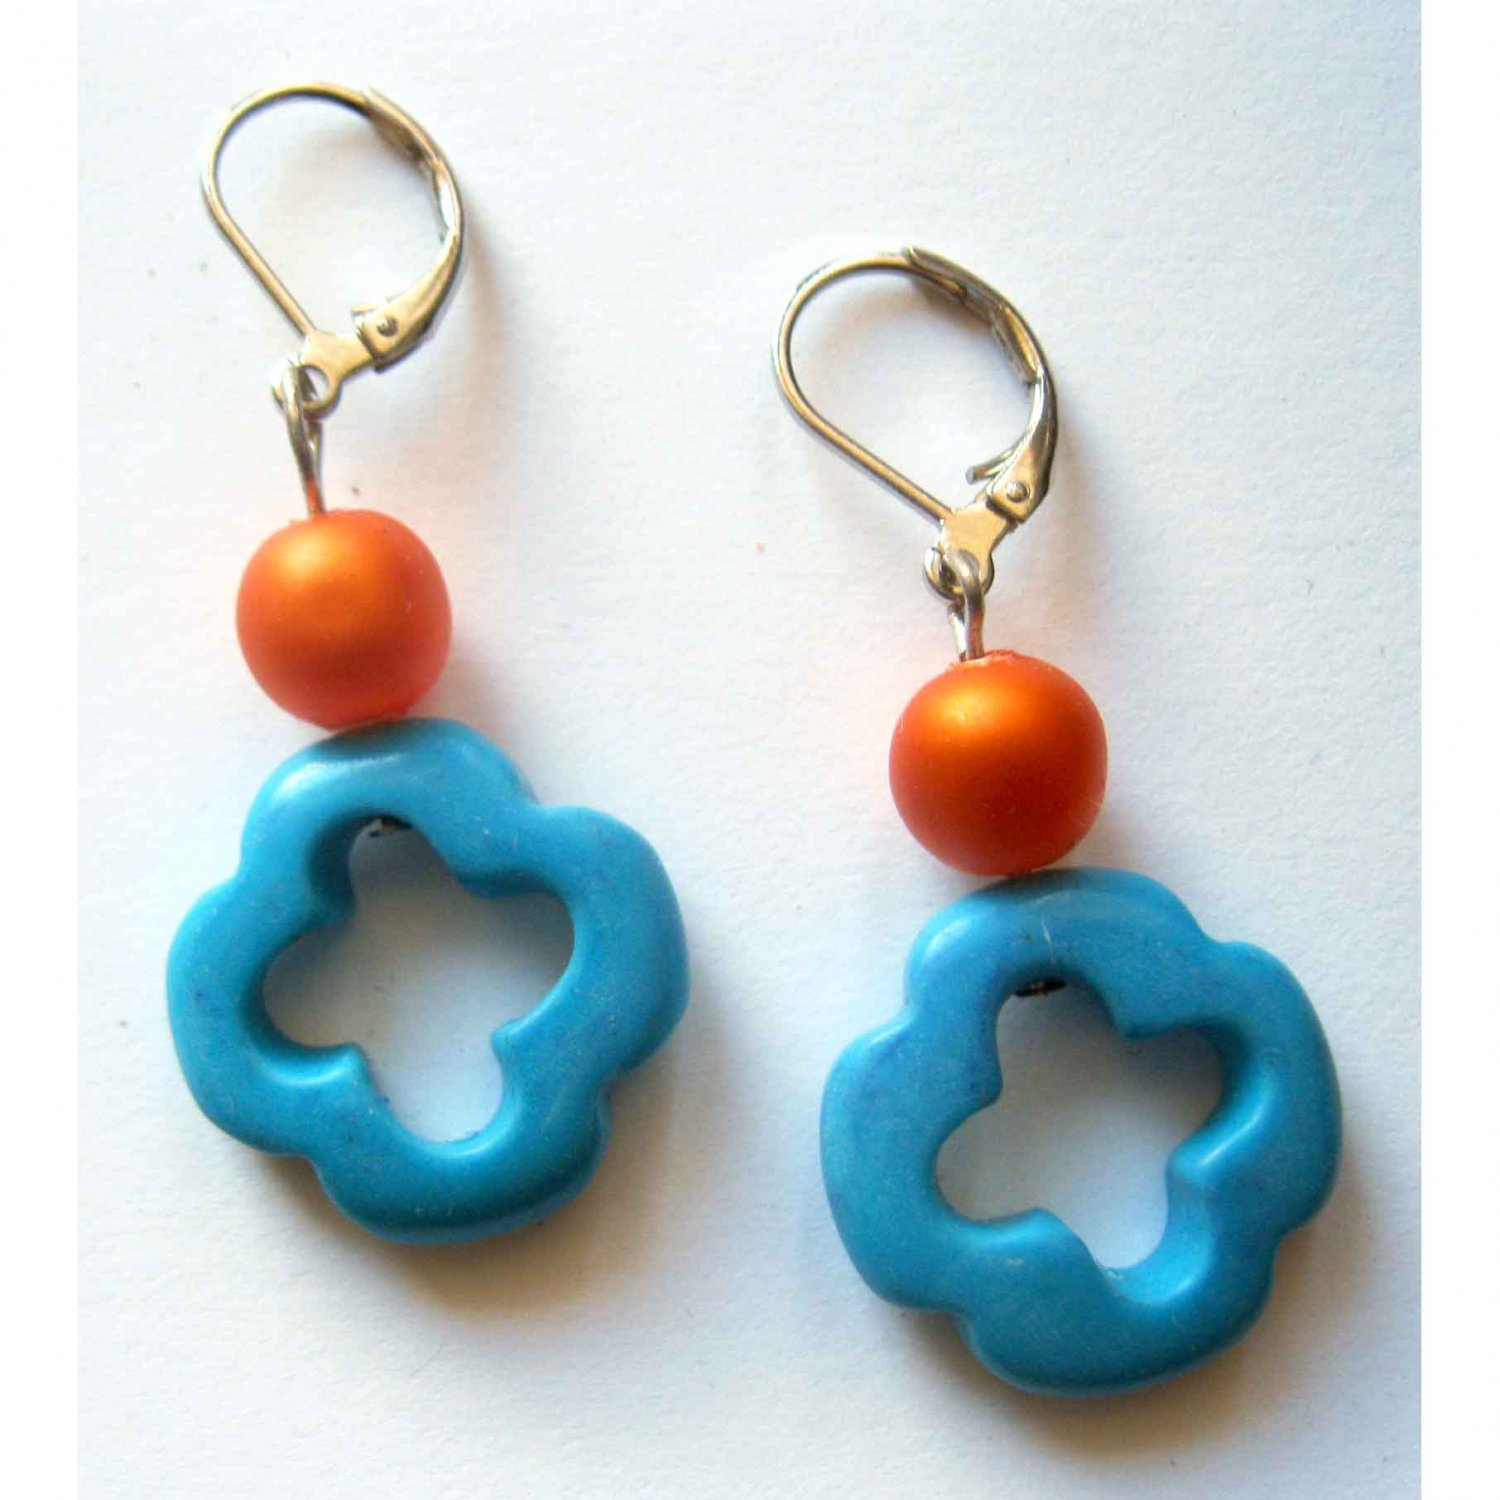 Blue cross semiprecious drop earrings with orange